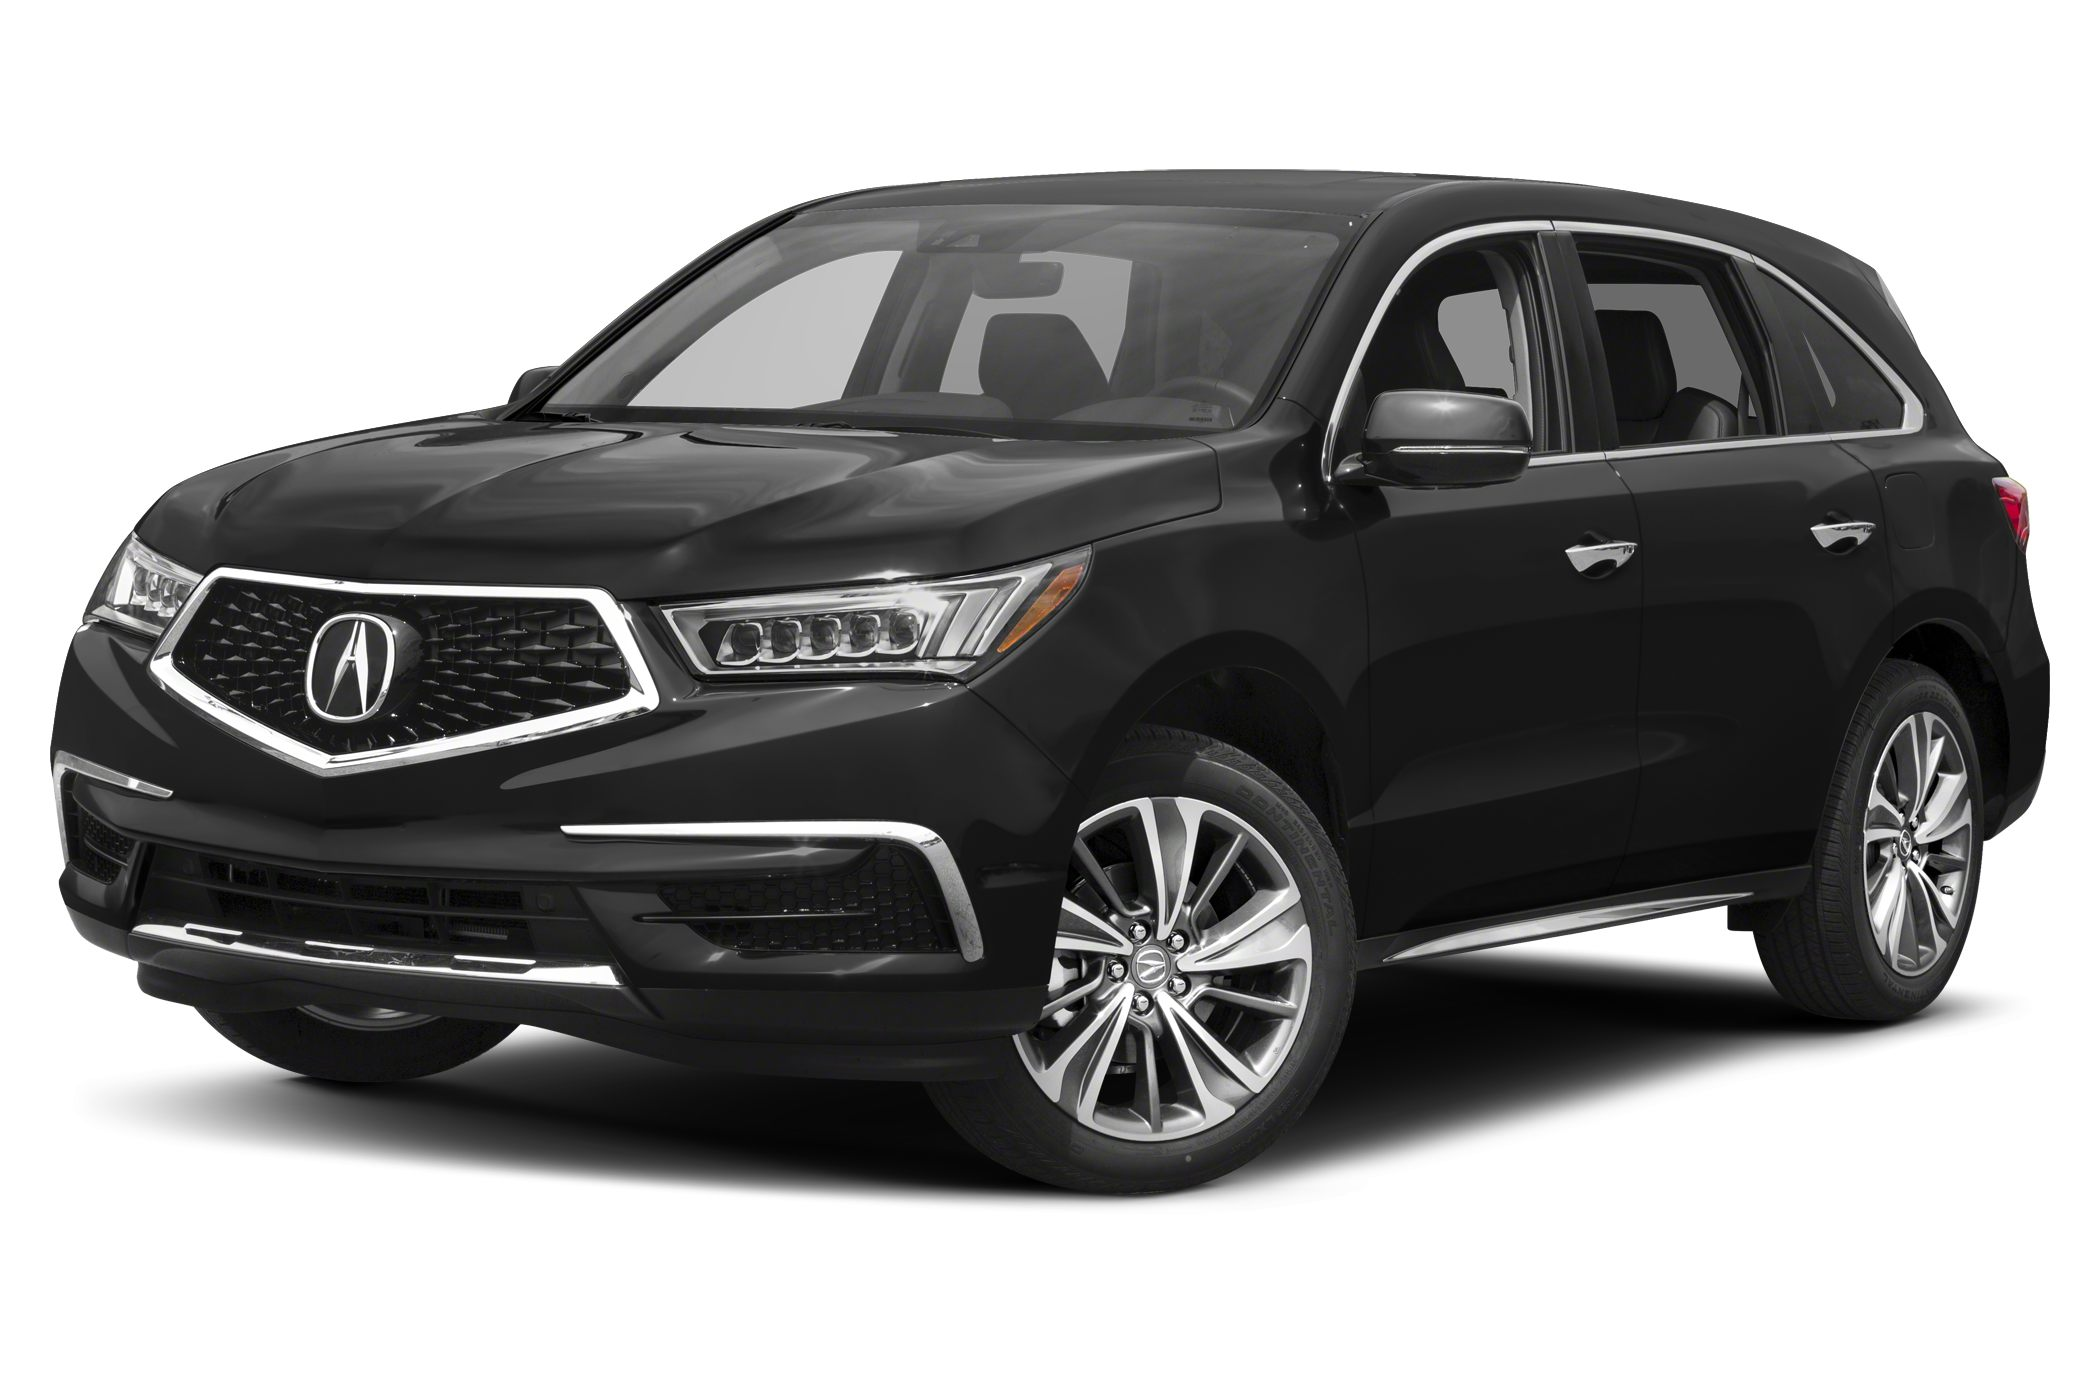 2017 ACURA MDX 3.5 TECHNOLOGY